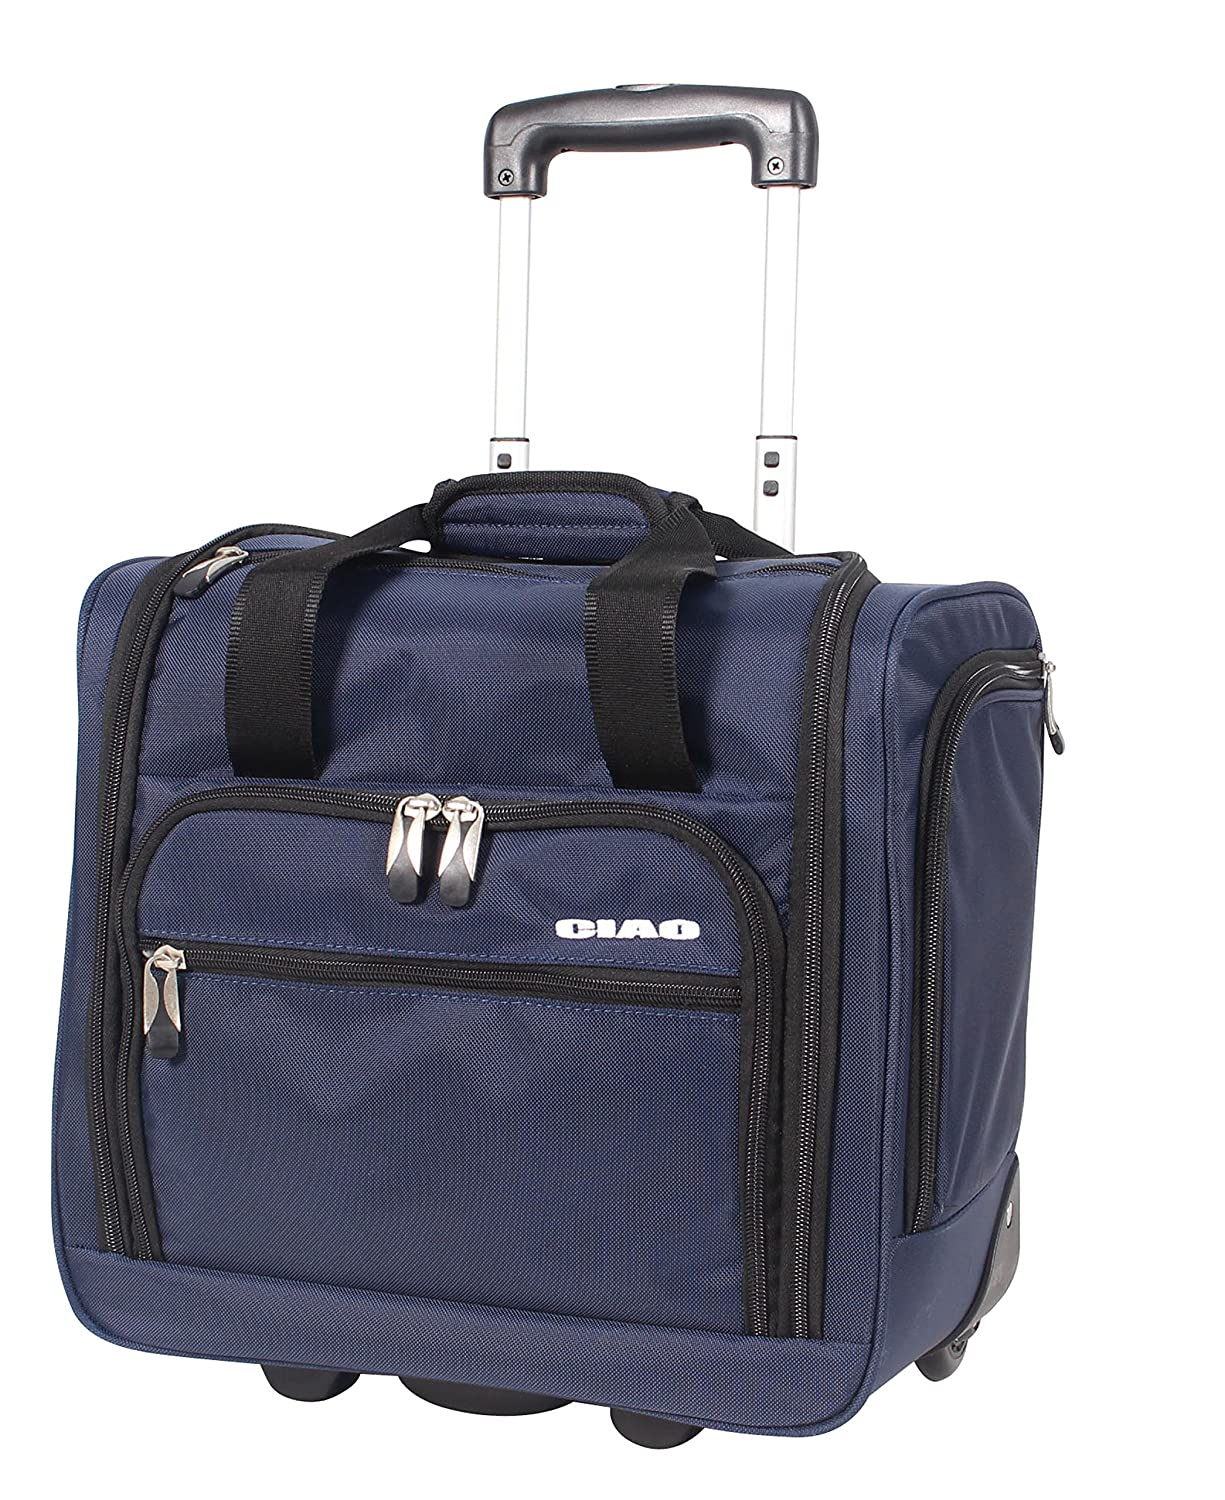 Ciao Luggage Carry On Suitcase Wheeled Airplane Weekender Under the Seat Bag CIAO! 695395